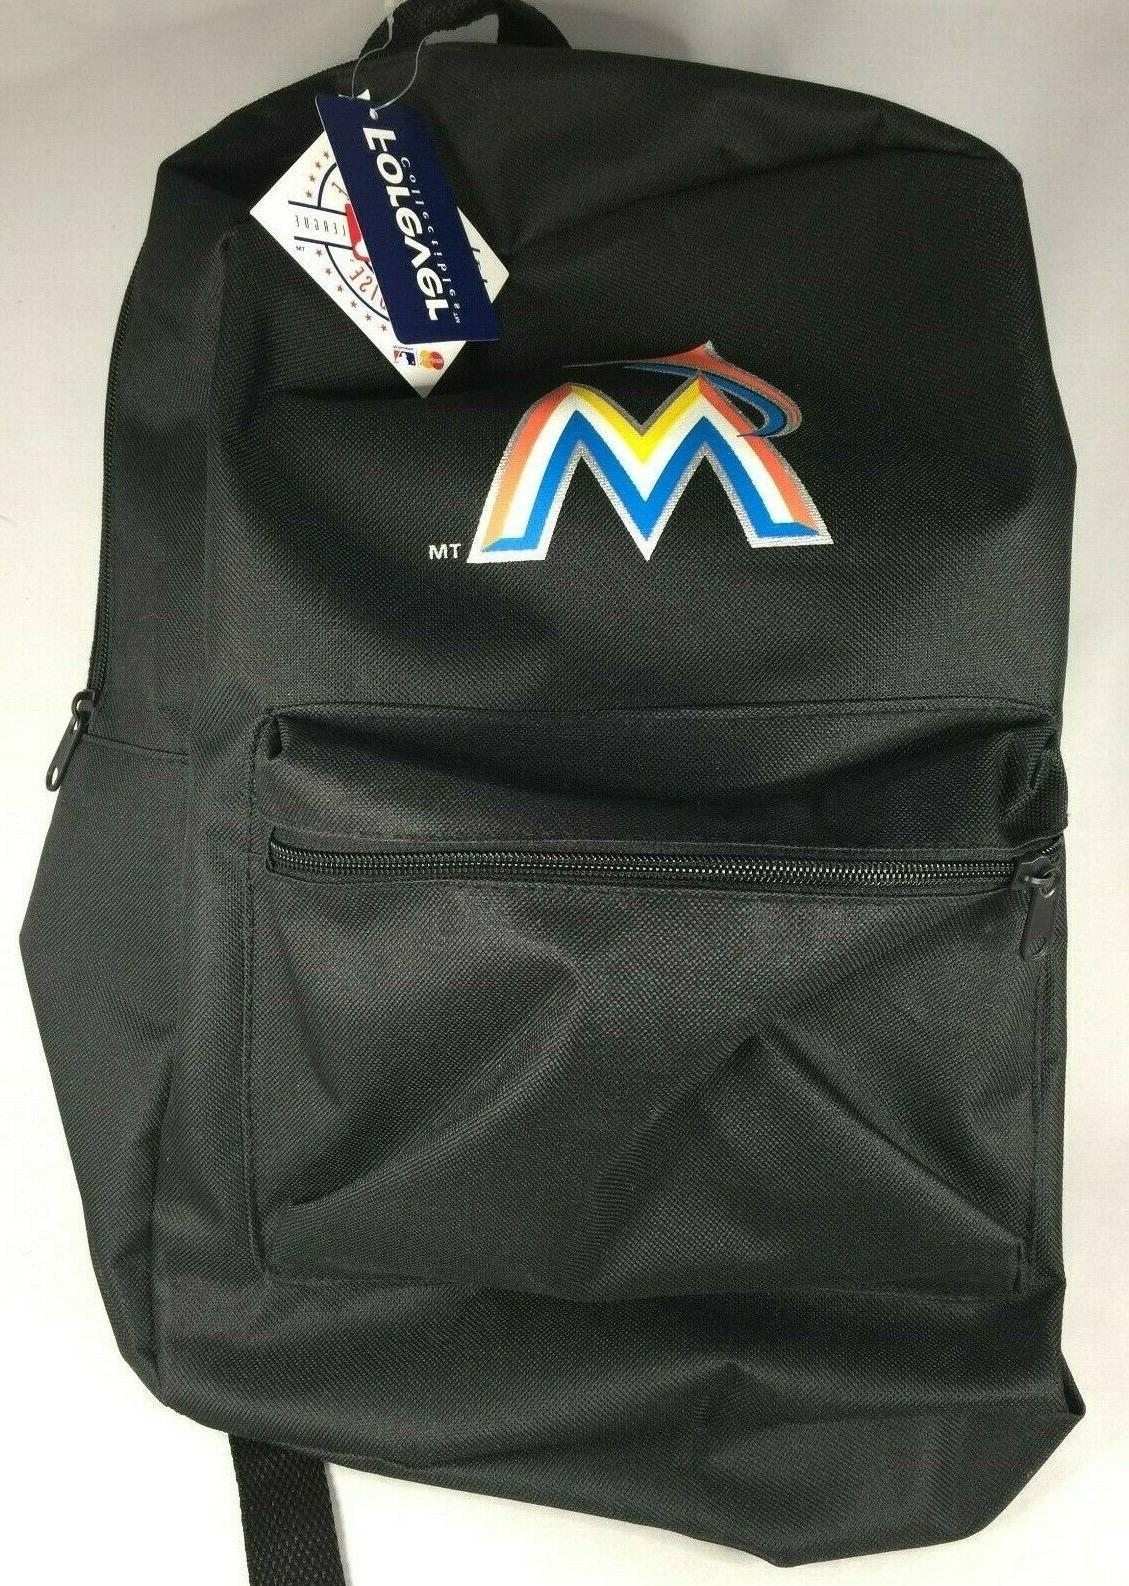 MLB MIAMI COLLECTIBLES NEW TAGS GENUINE PADDED